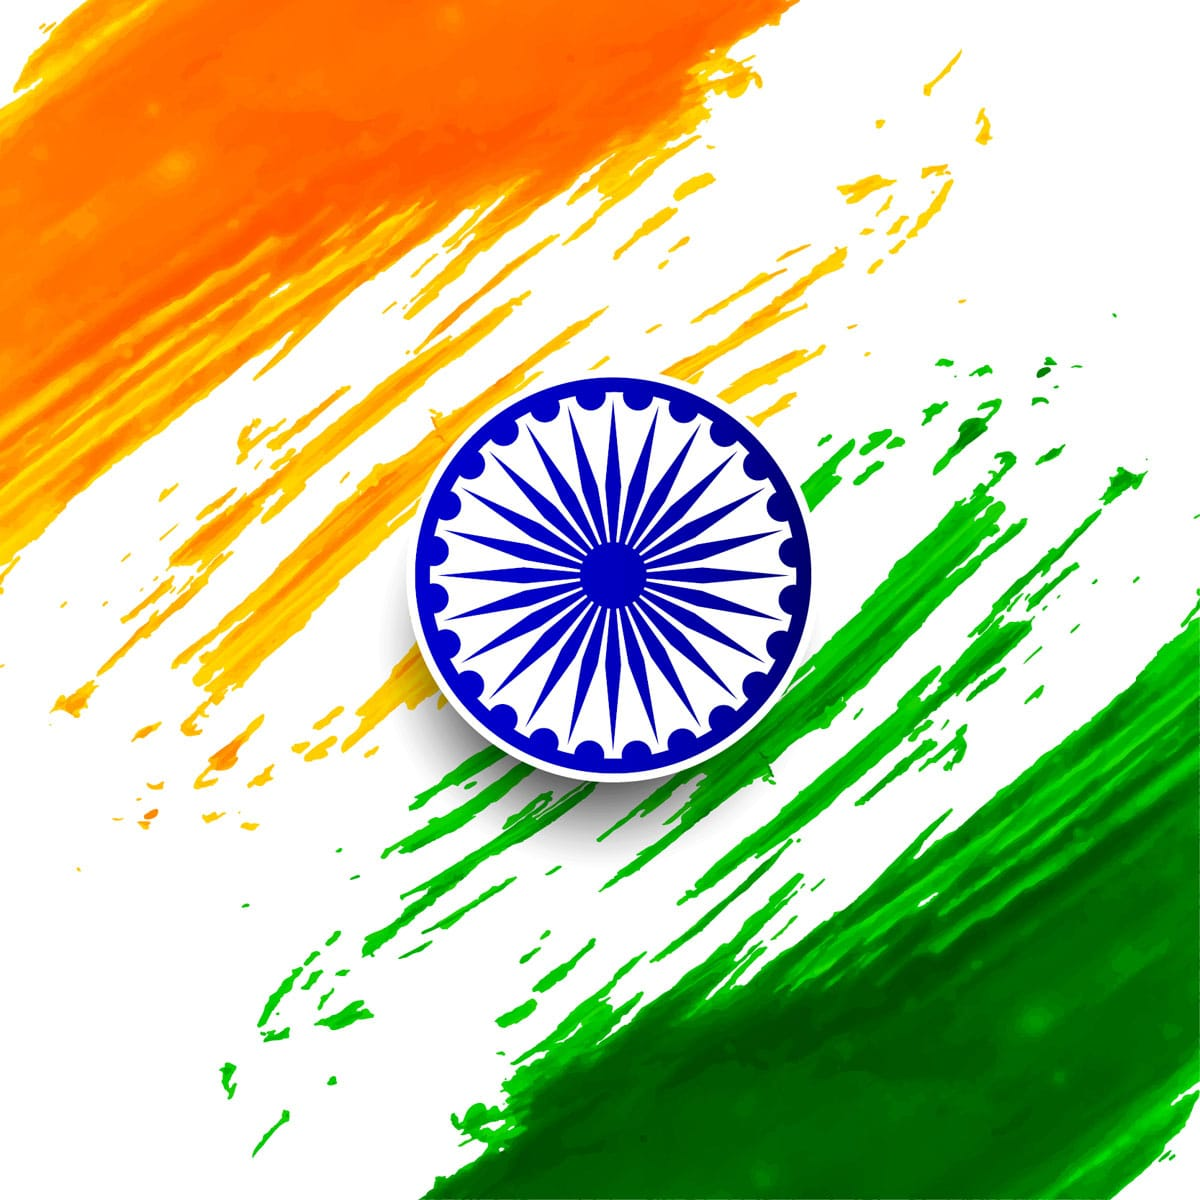 Indian Flag Images Wallpapers Download Indian%2BFlag%2BHD%2BImages